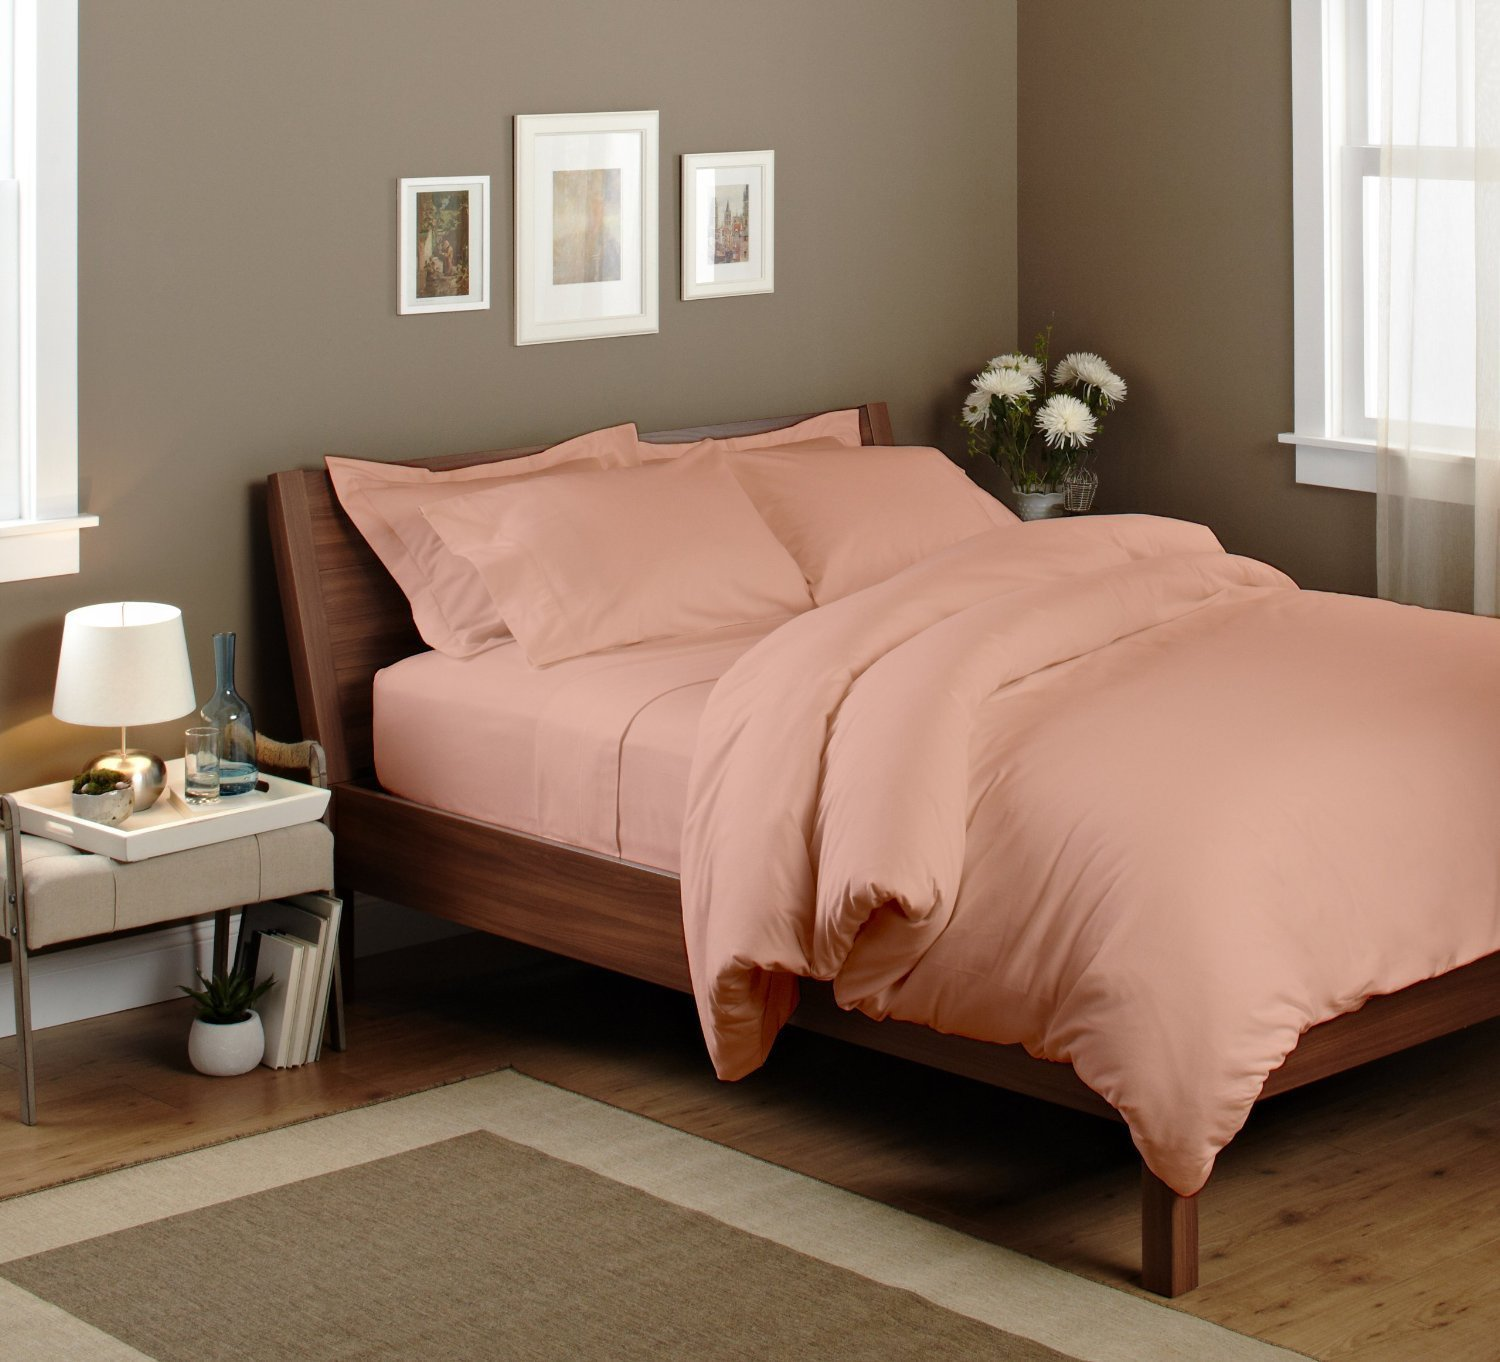 Twin Flat Sheet Only - Soft & Comfy 100% Micro Fiber- By Crescent Bedding (Twin , Rose)